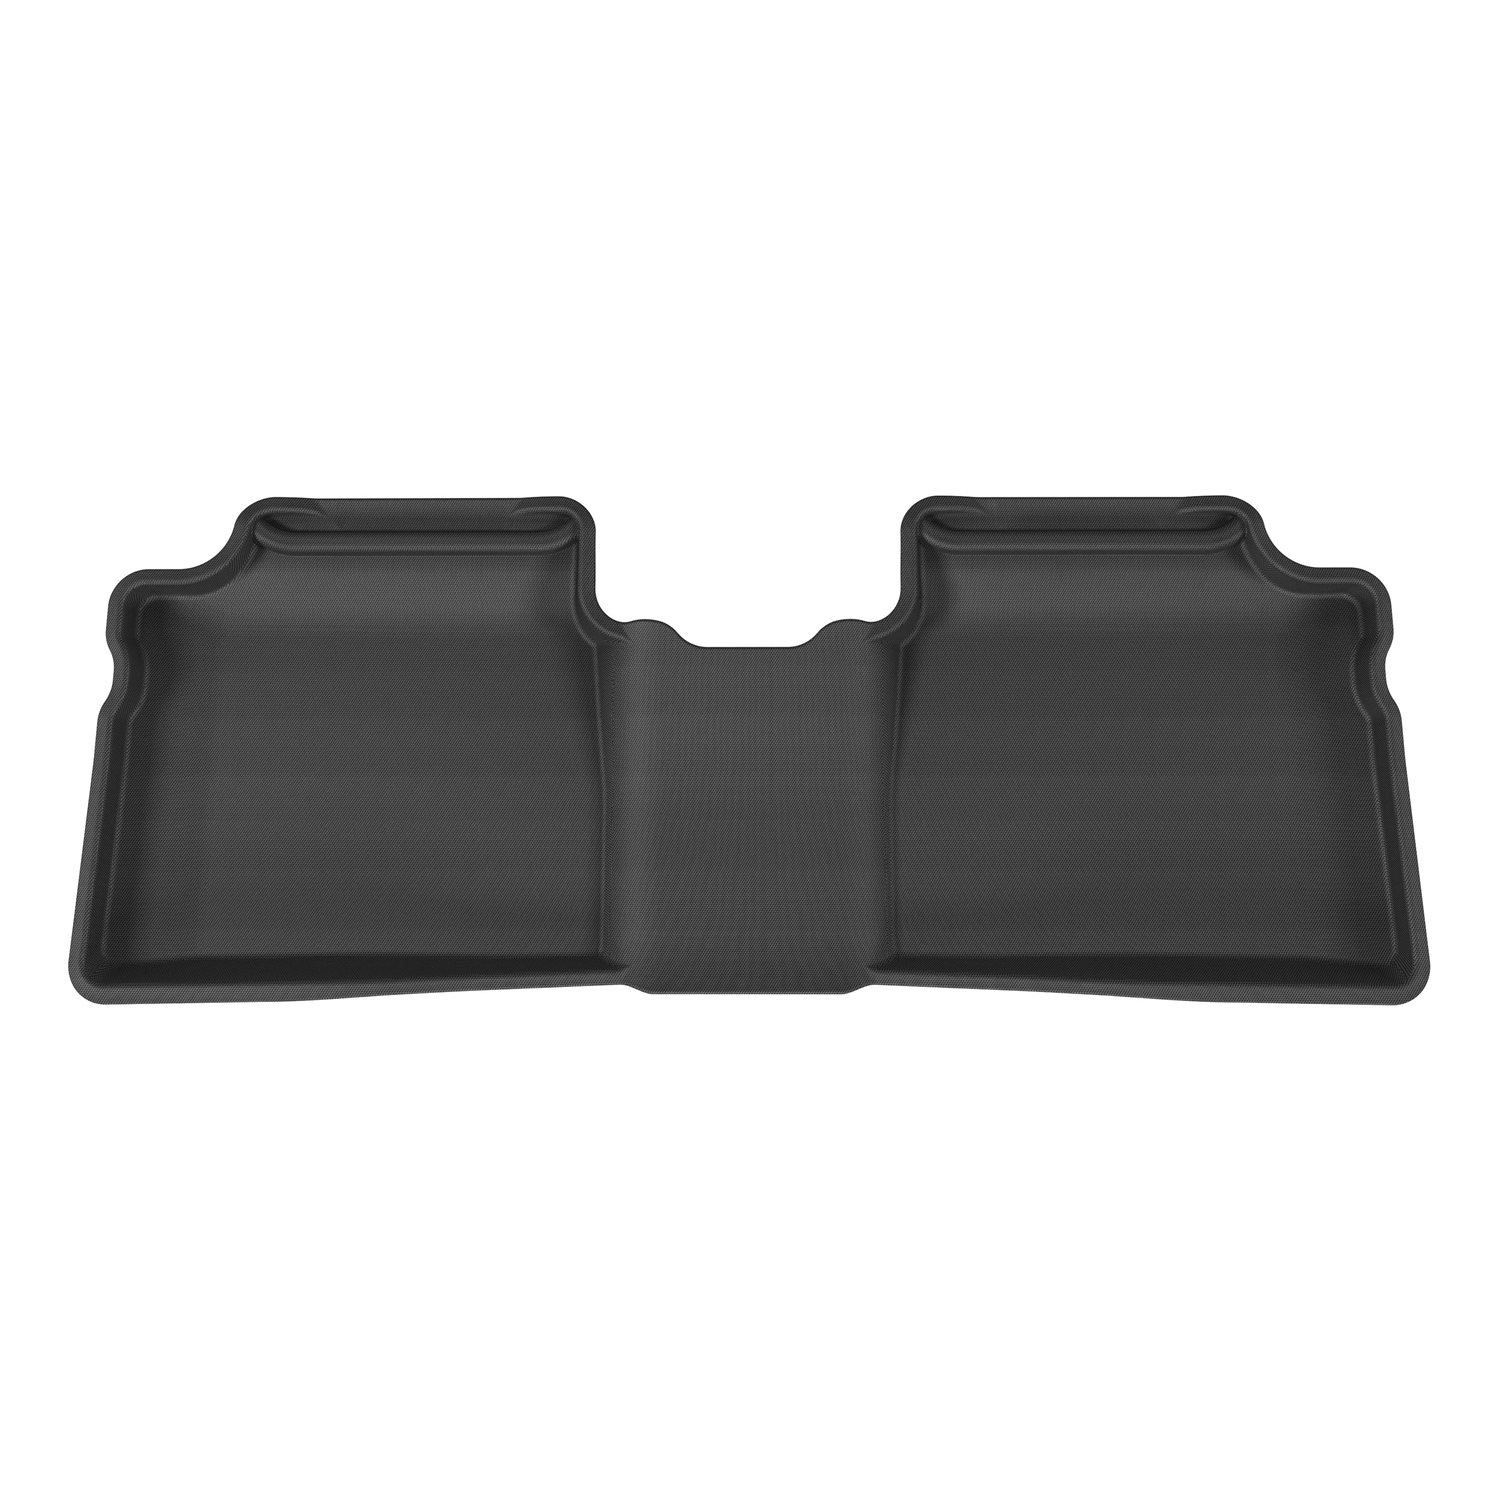 Aries 3D Custom Molded Floor Mat Liner Fits 1013 Prius  eBay